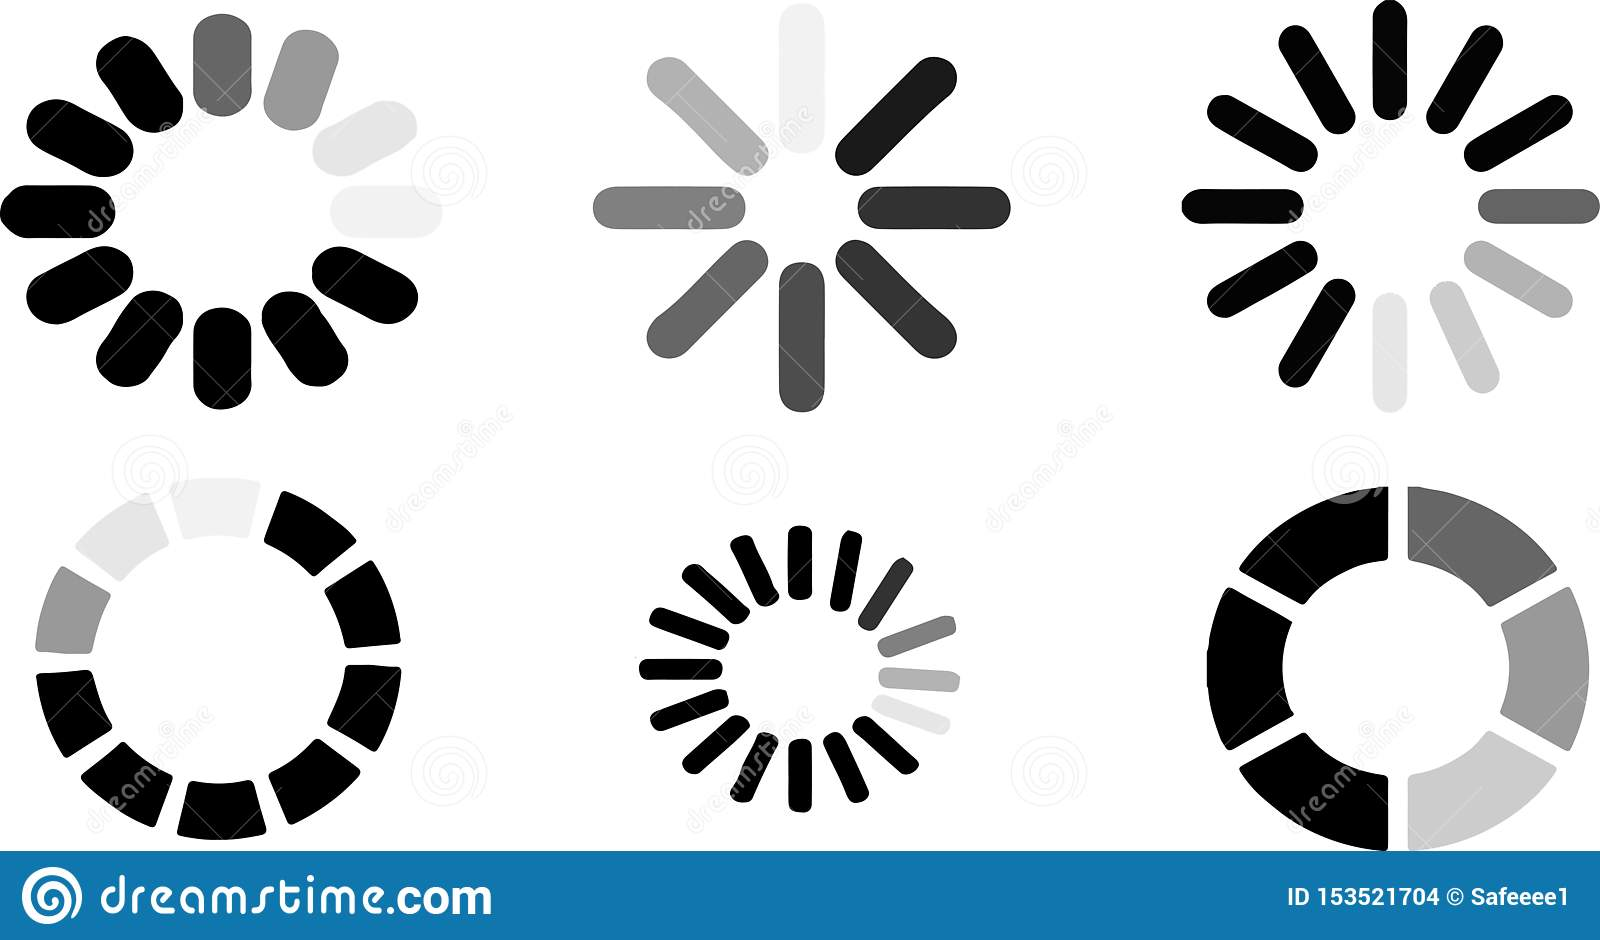 Loading icon on white background